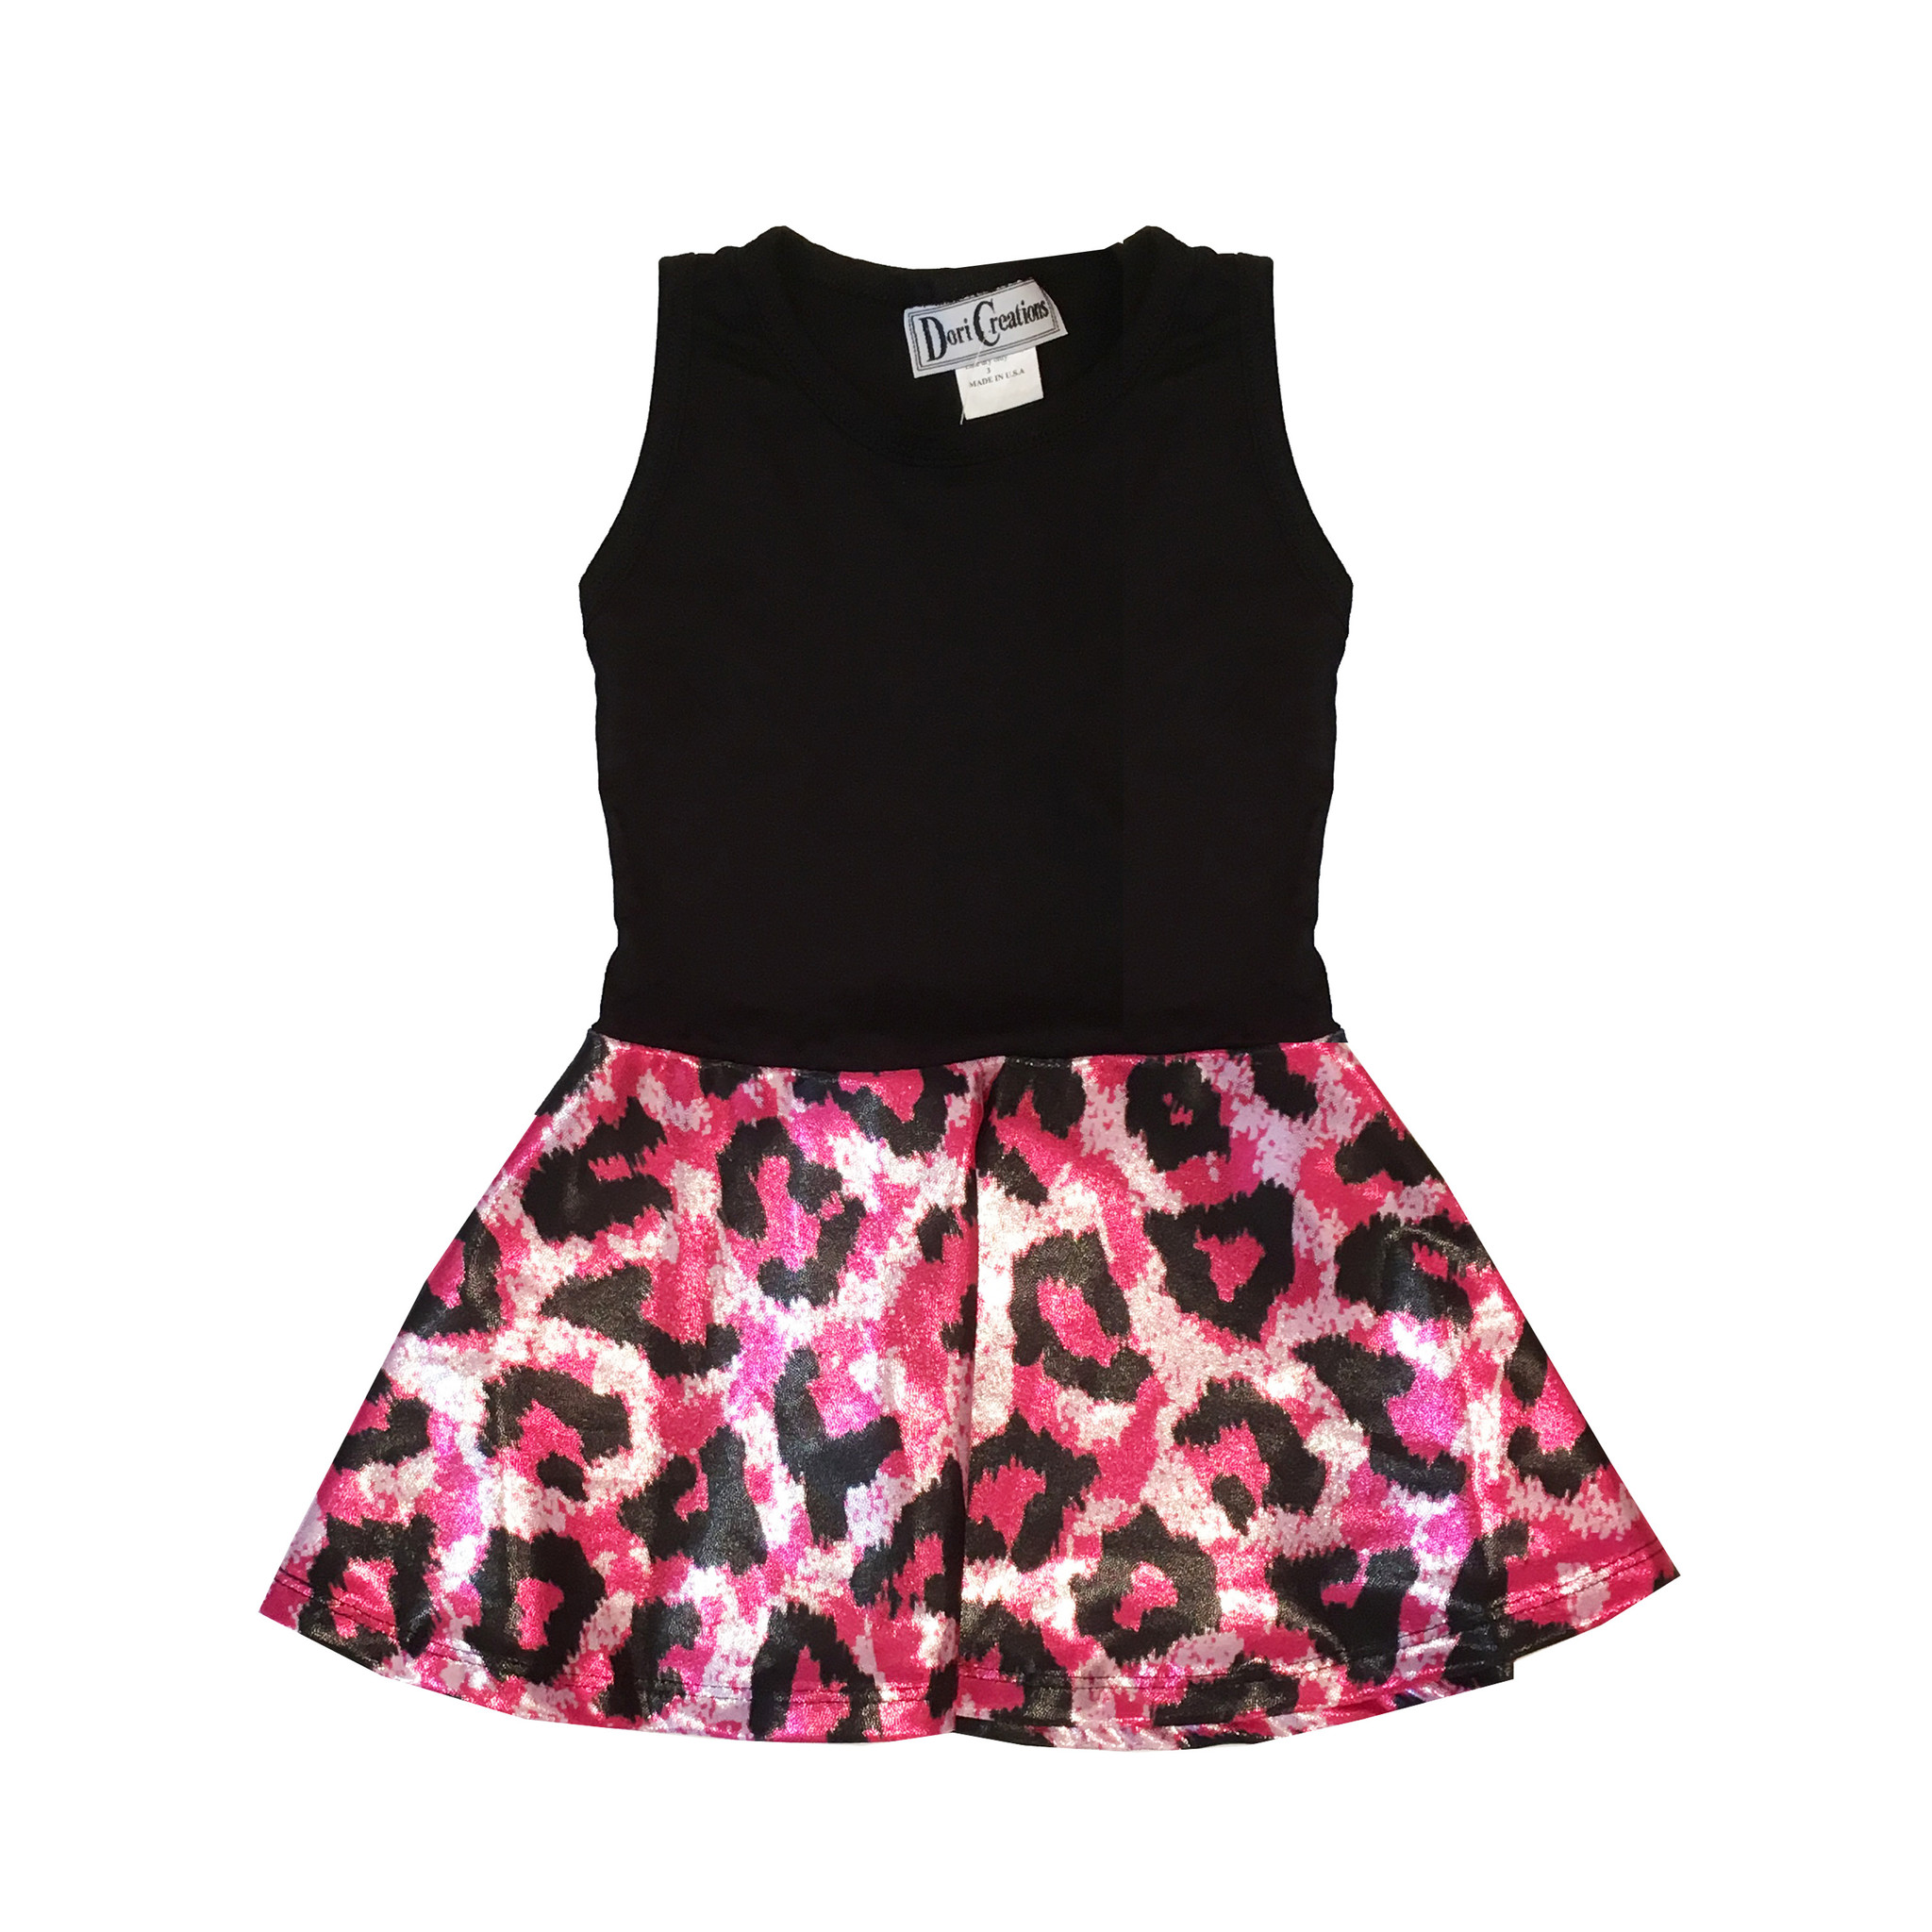 Dori Creations Glitter Pink Leopard Dress